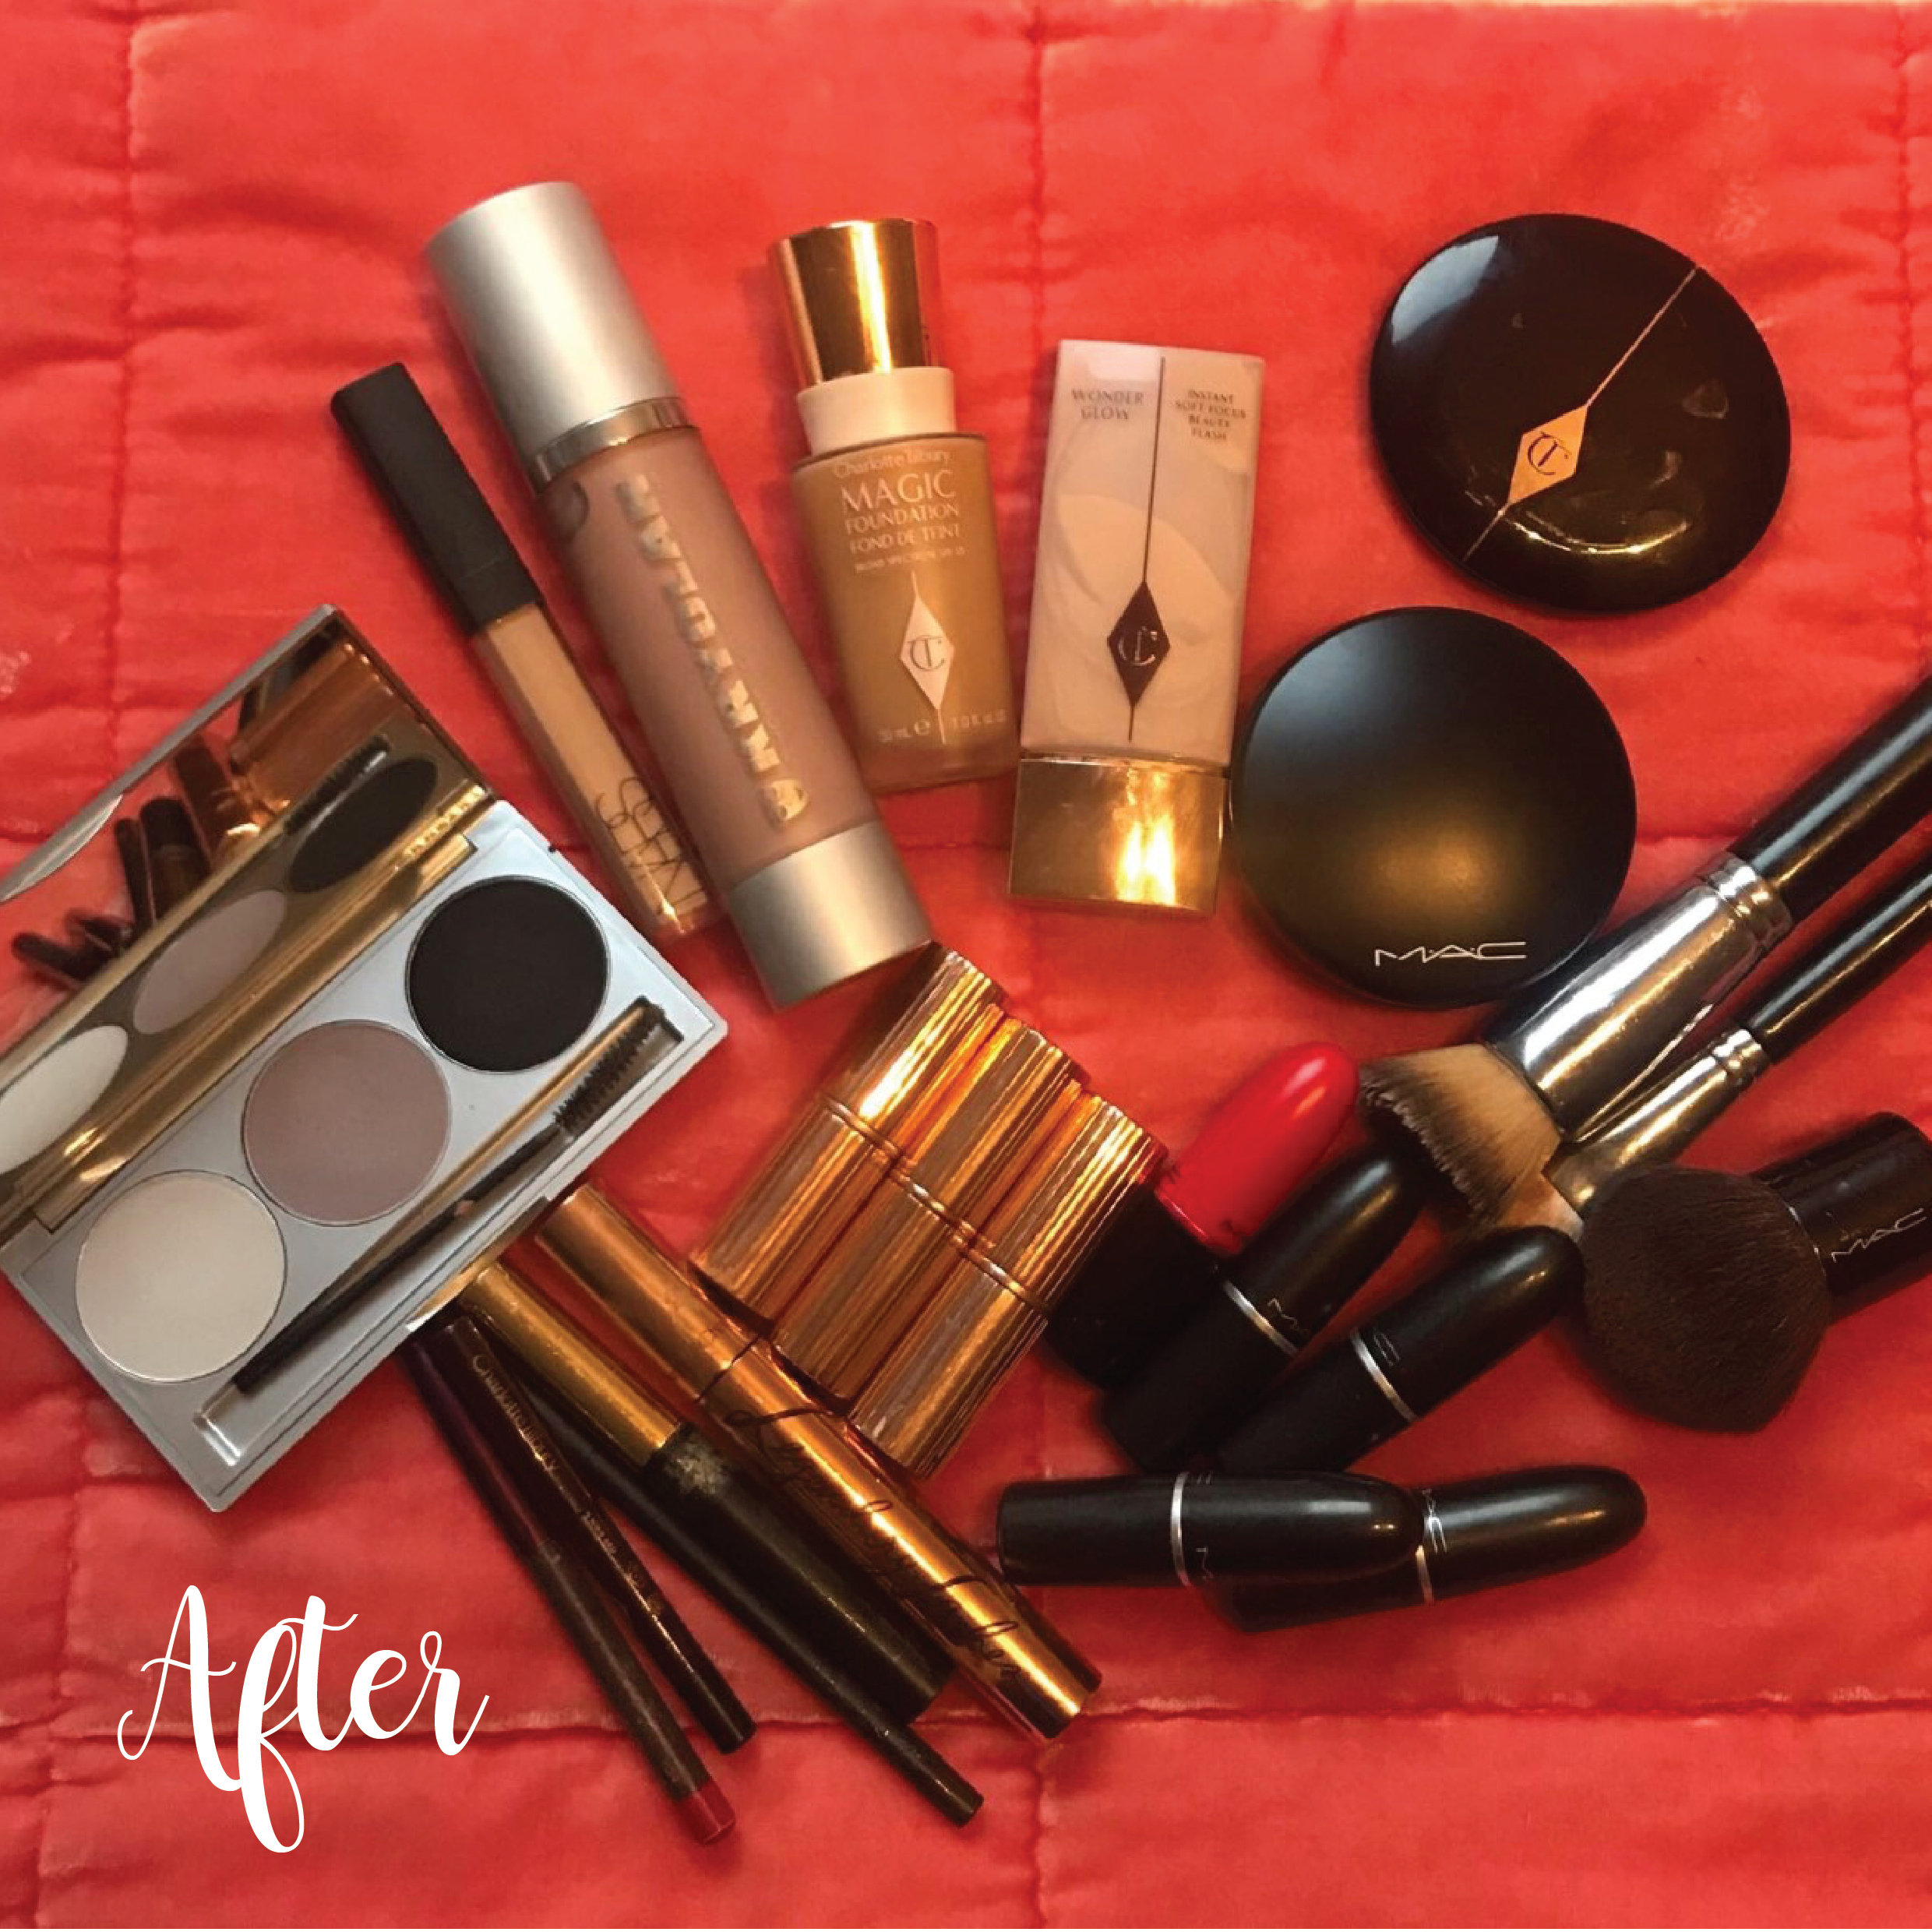 Does your Make-up bag need an edit?